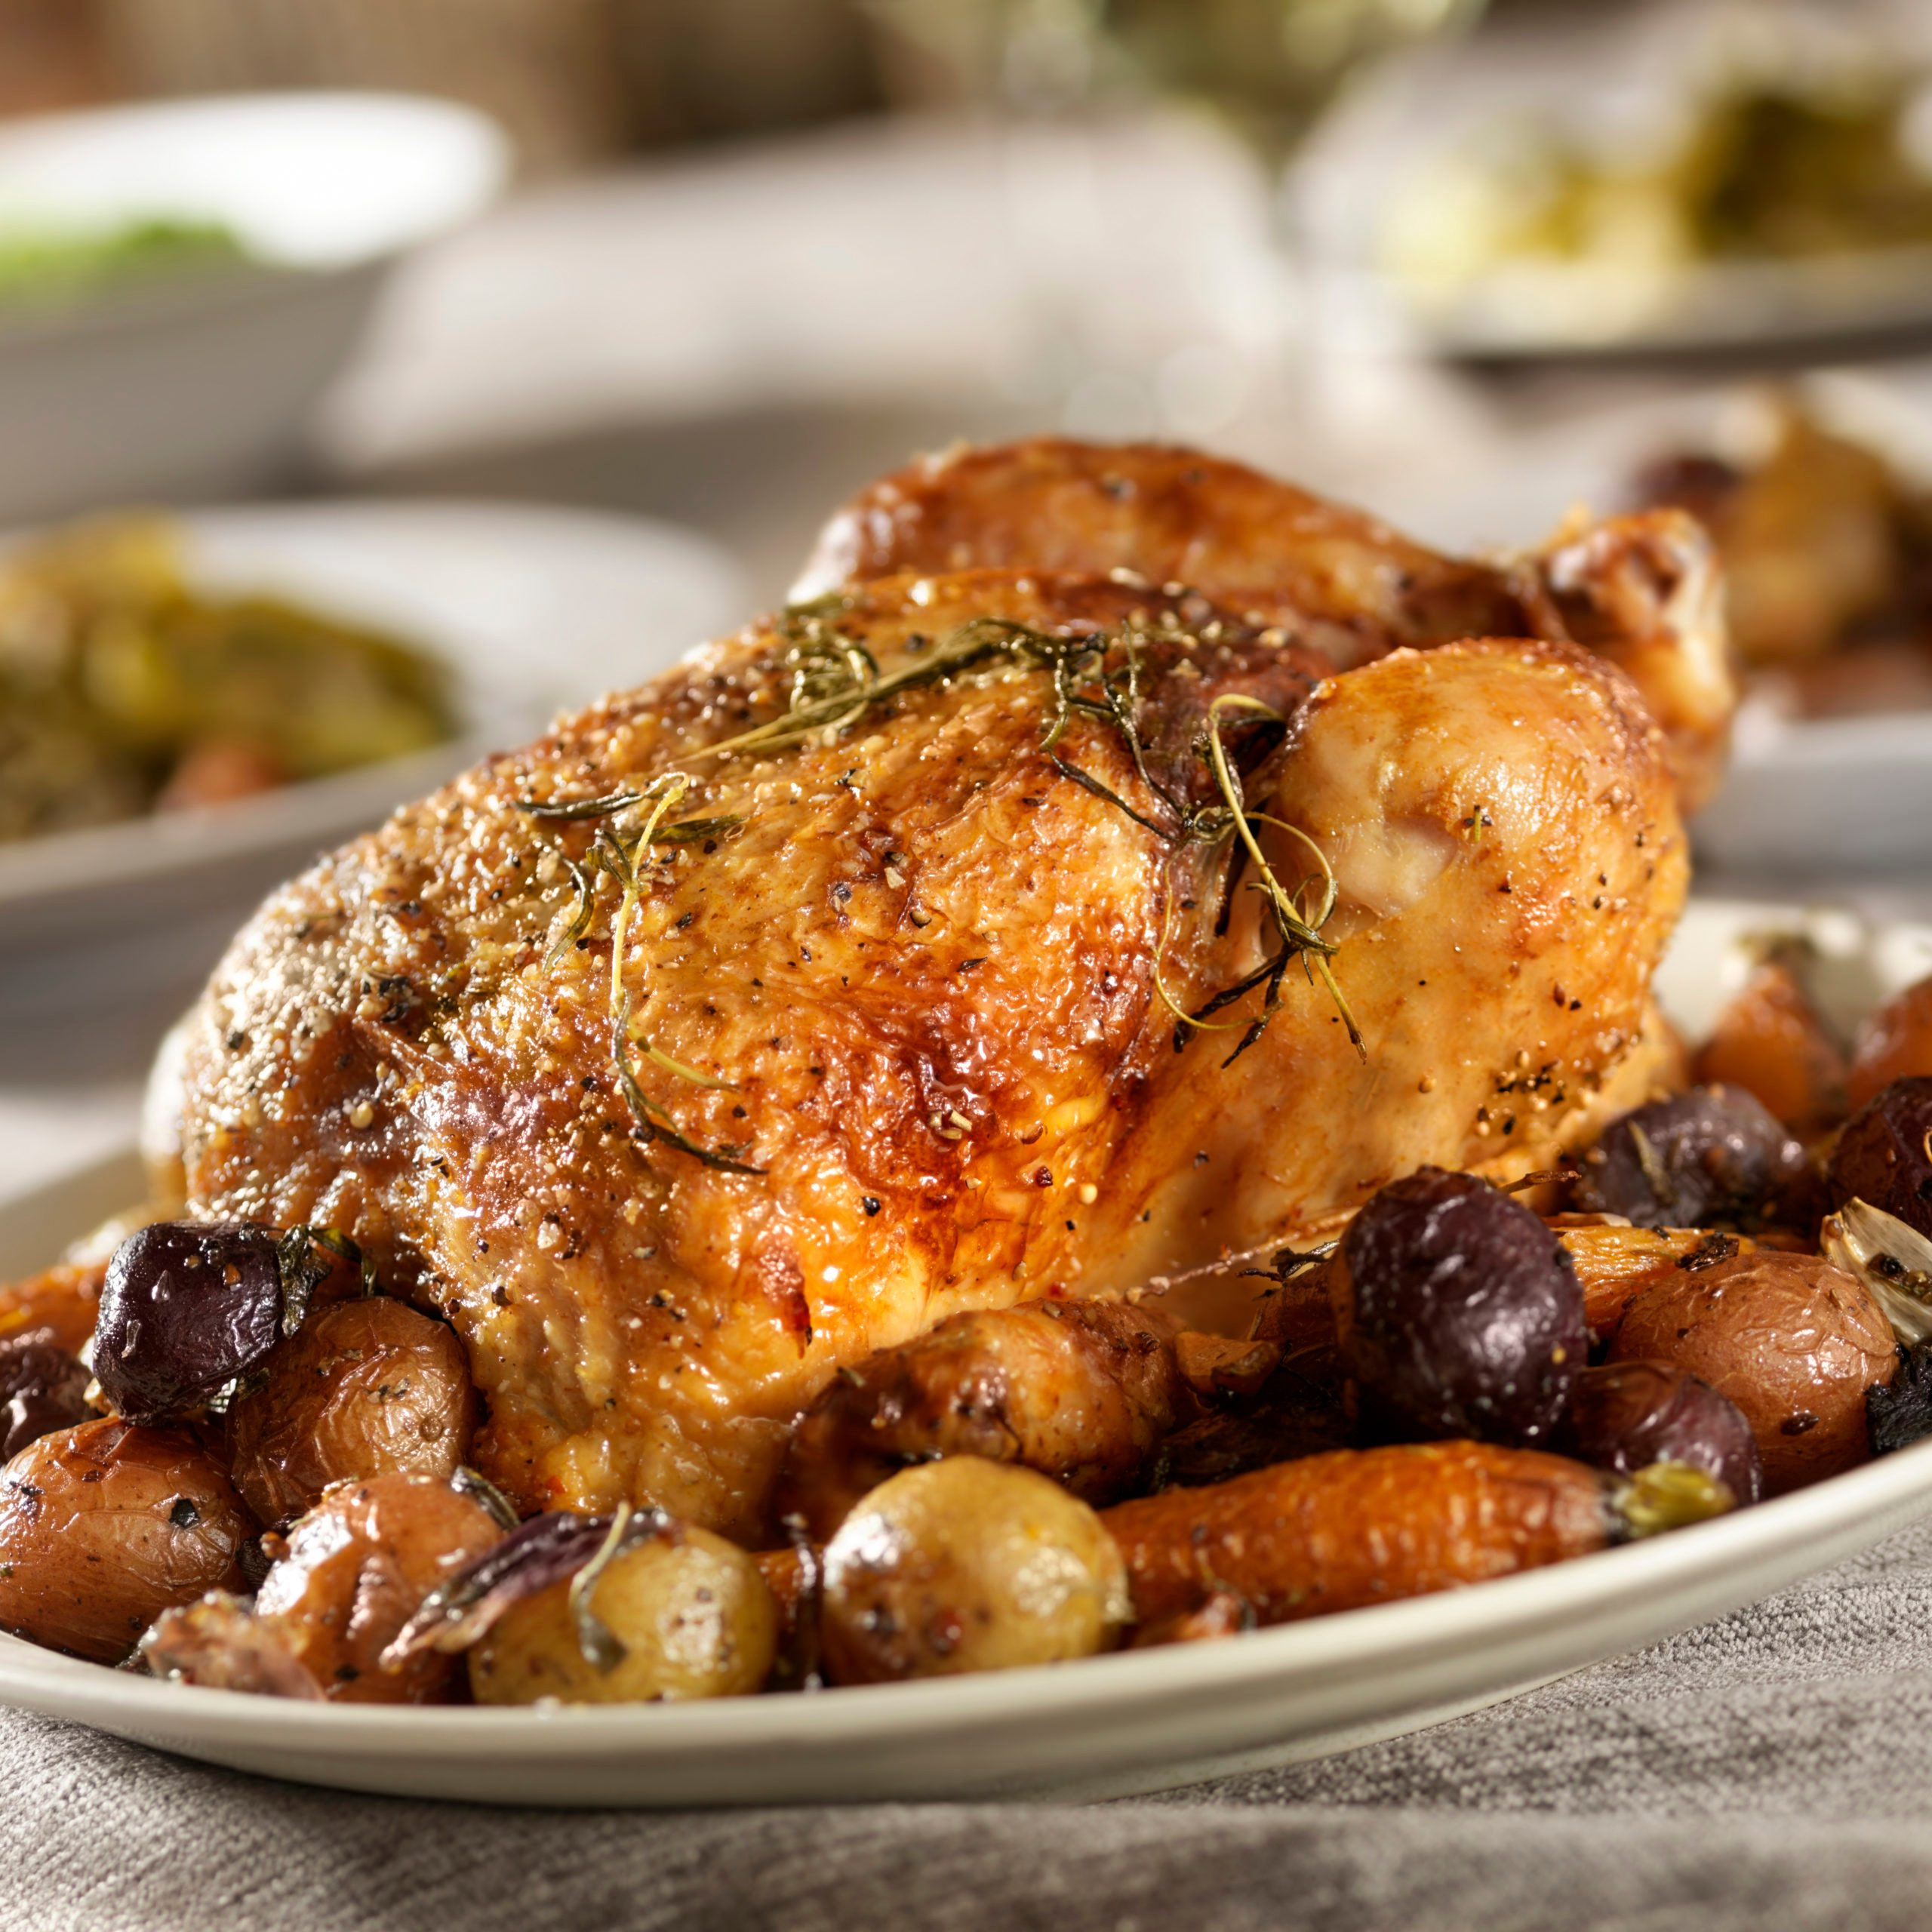 Roasted Chicken with Potatoes and Carrots with Rosemary -Photographed on Hasselblad H3D2-39mb Camera